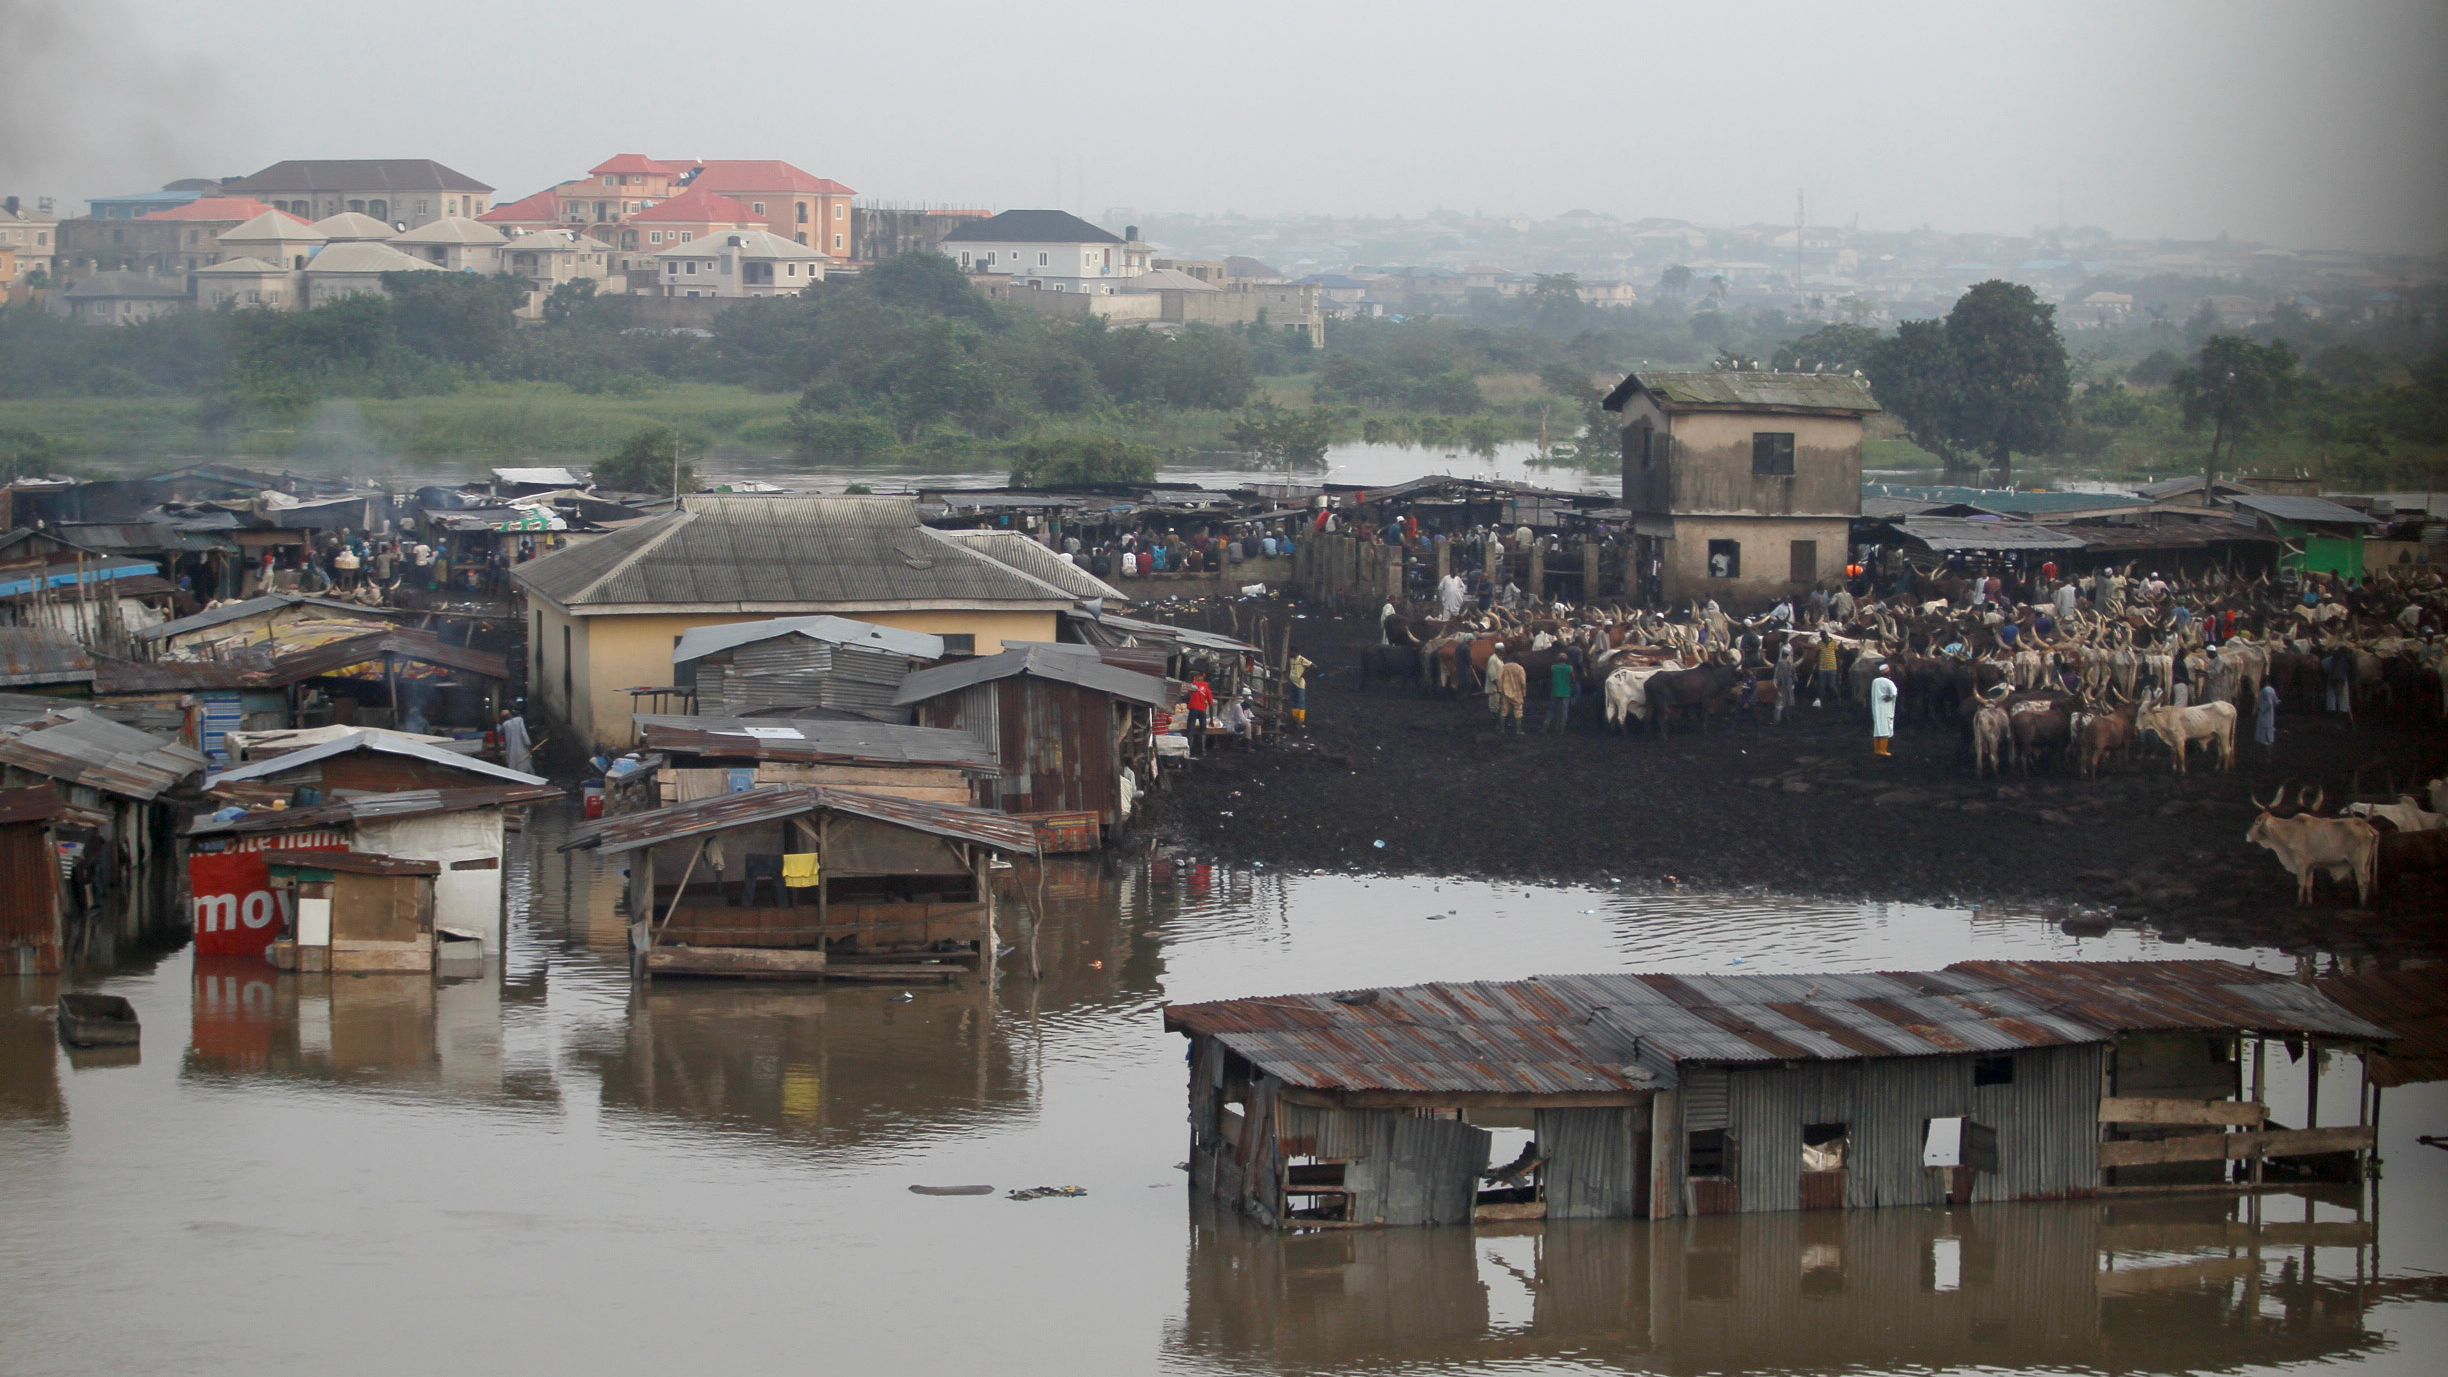 The Ogun river swallows the bank near a livestock market outside Nigeria's commercial capital, Lagos.